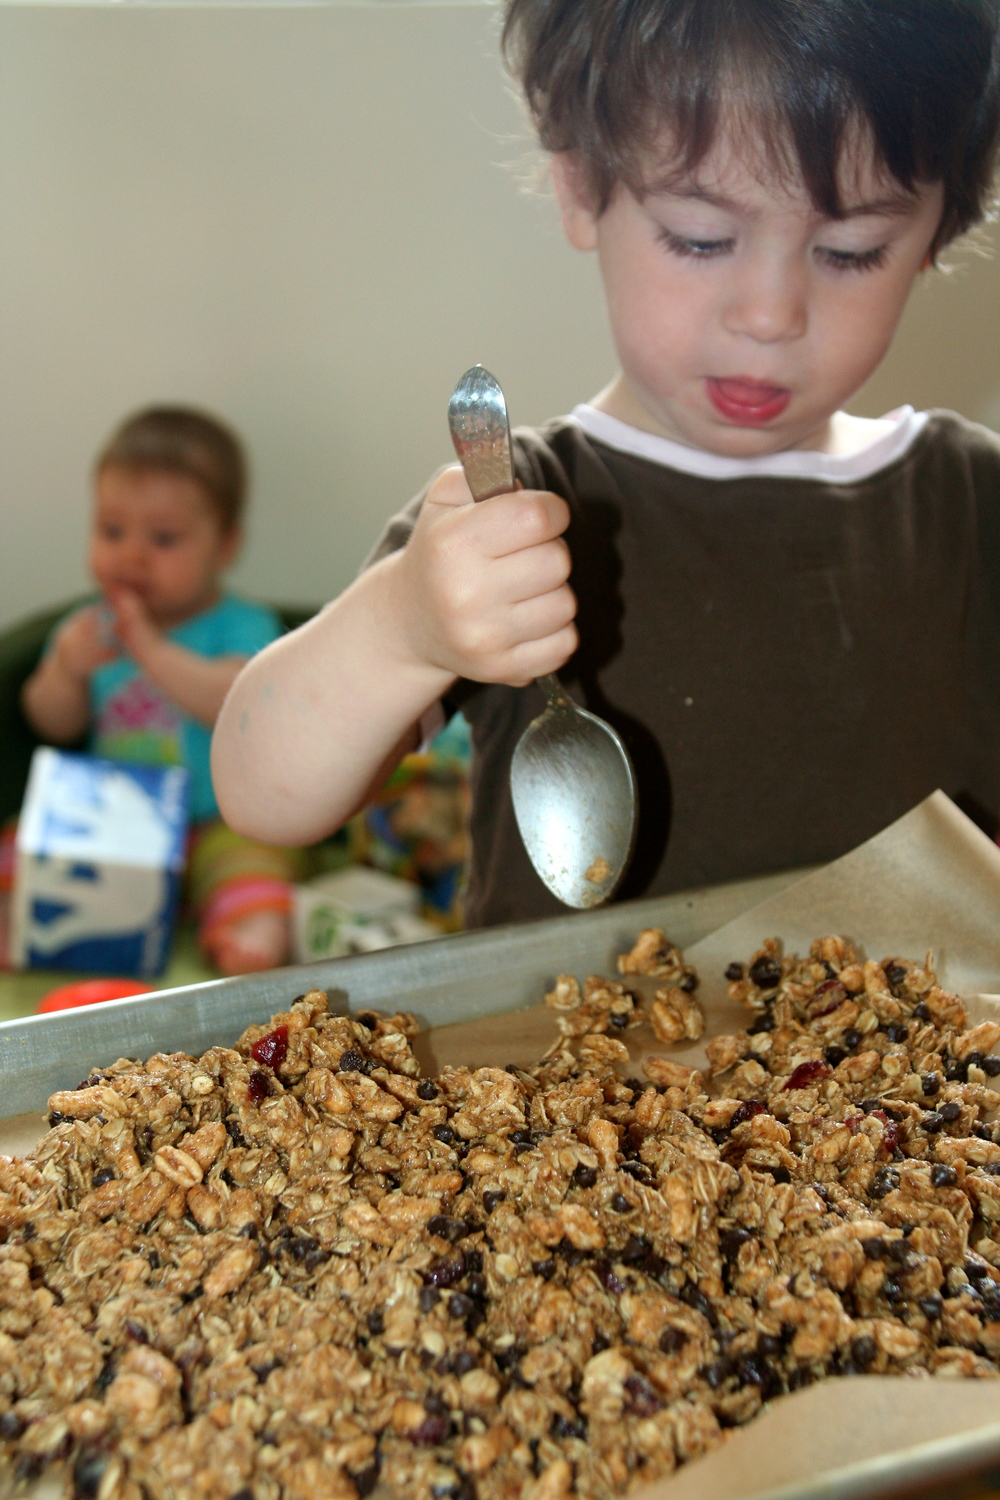 My son spreading granola bars onto a cookie sheet for Food Revolution Day 2013